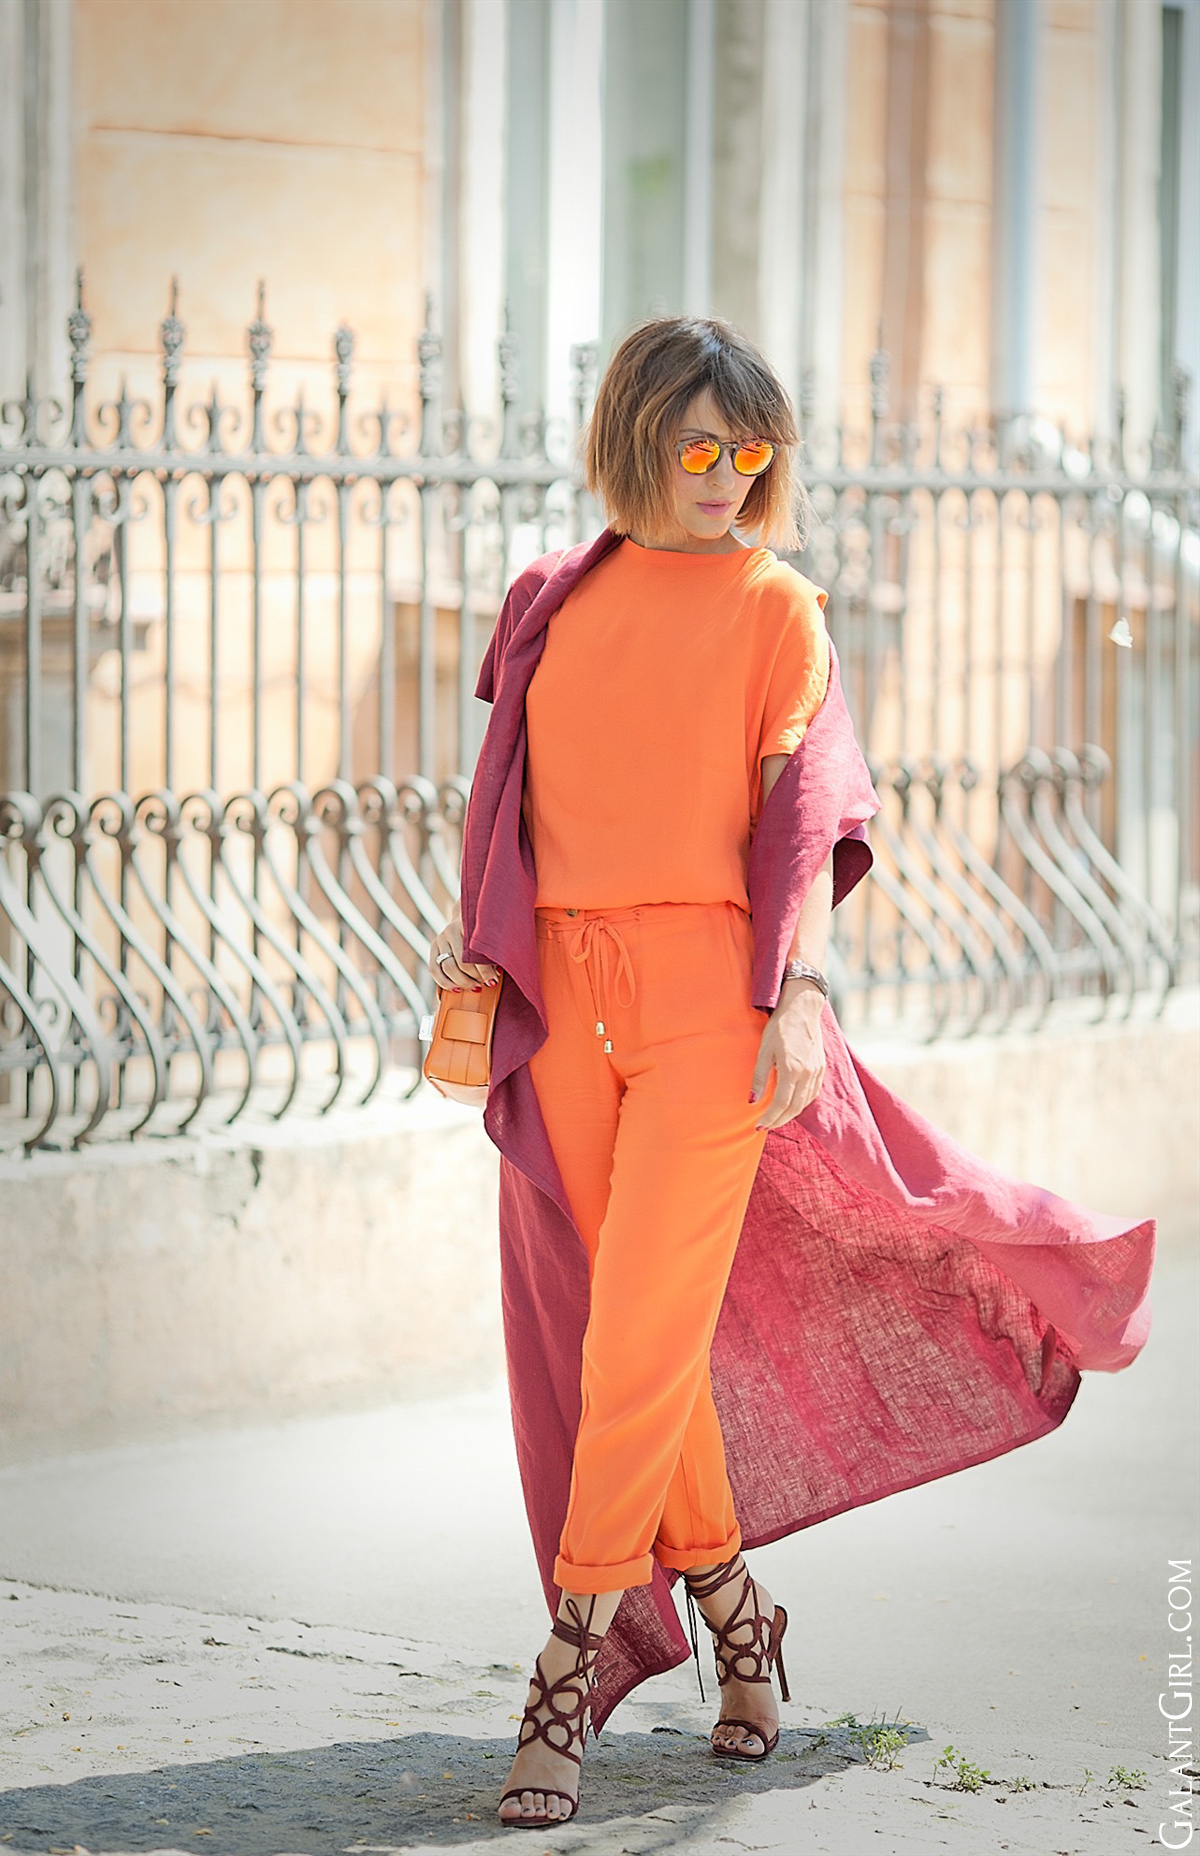 bold-street-style-outfit-in-orange-and-burgundy-colors